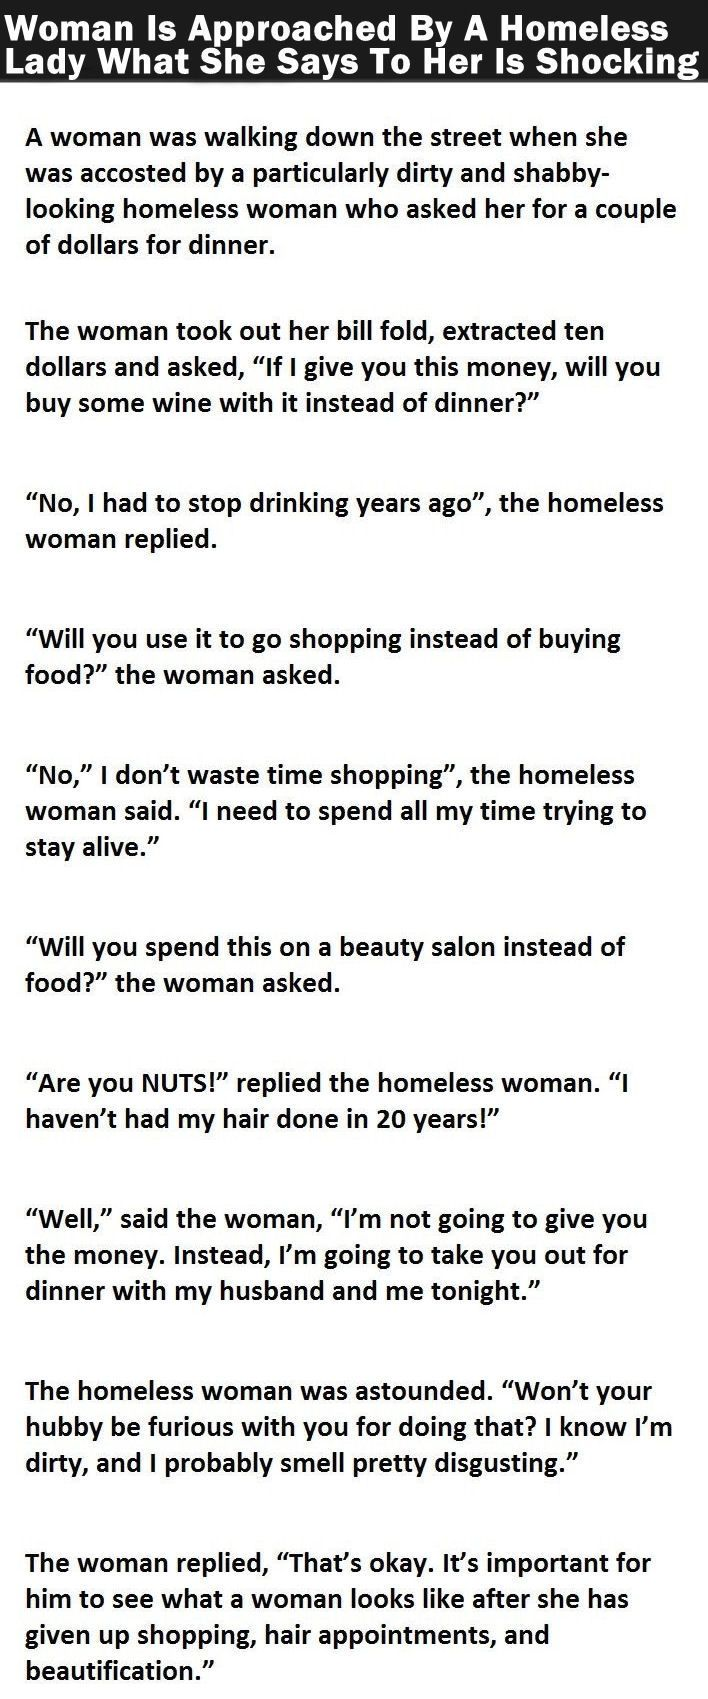 Woman Is Approached By A Homeless Lady What She Says To Her Is Shocking funny jokes story lol funny quote funny quotes funny sayings joke hilarious humor stories marriage humor funny jokes